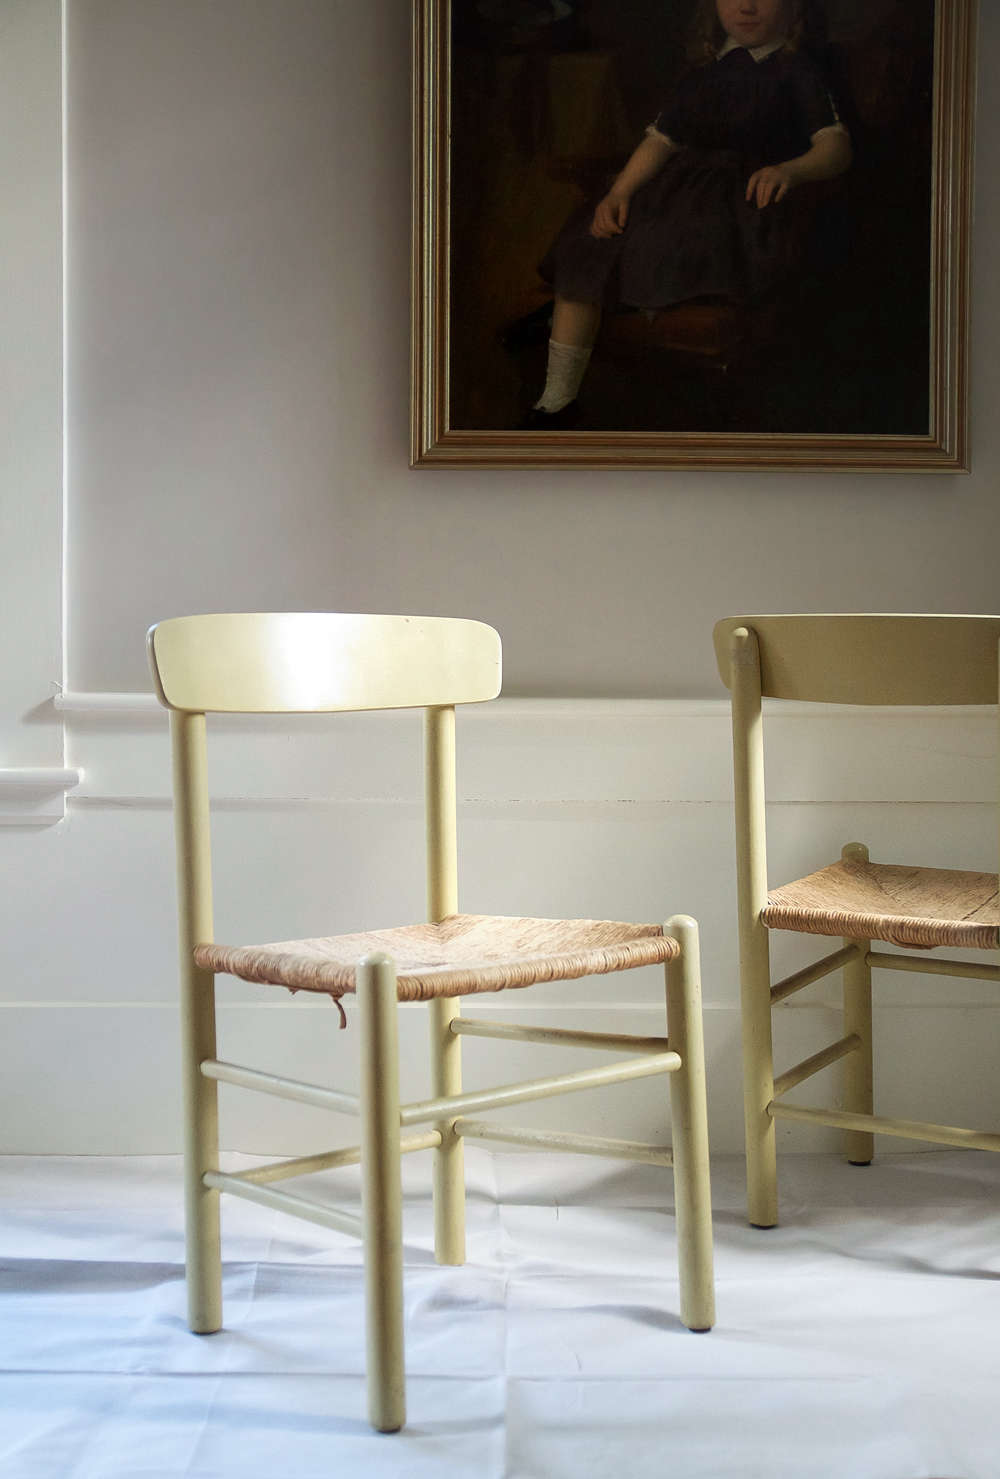 How-to-paint-furniture-Remodelista_edited-1